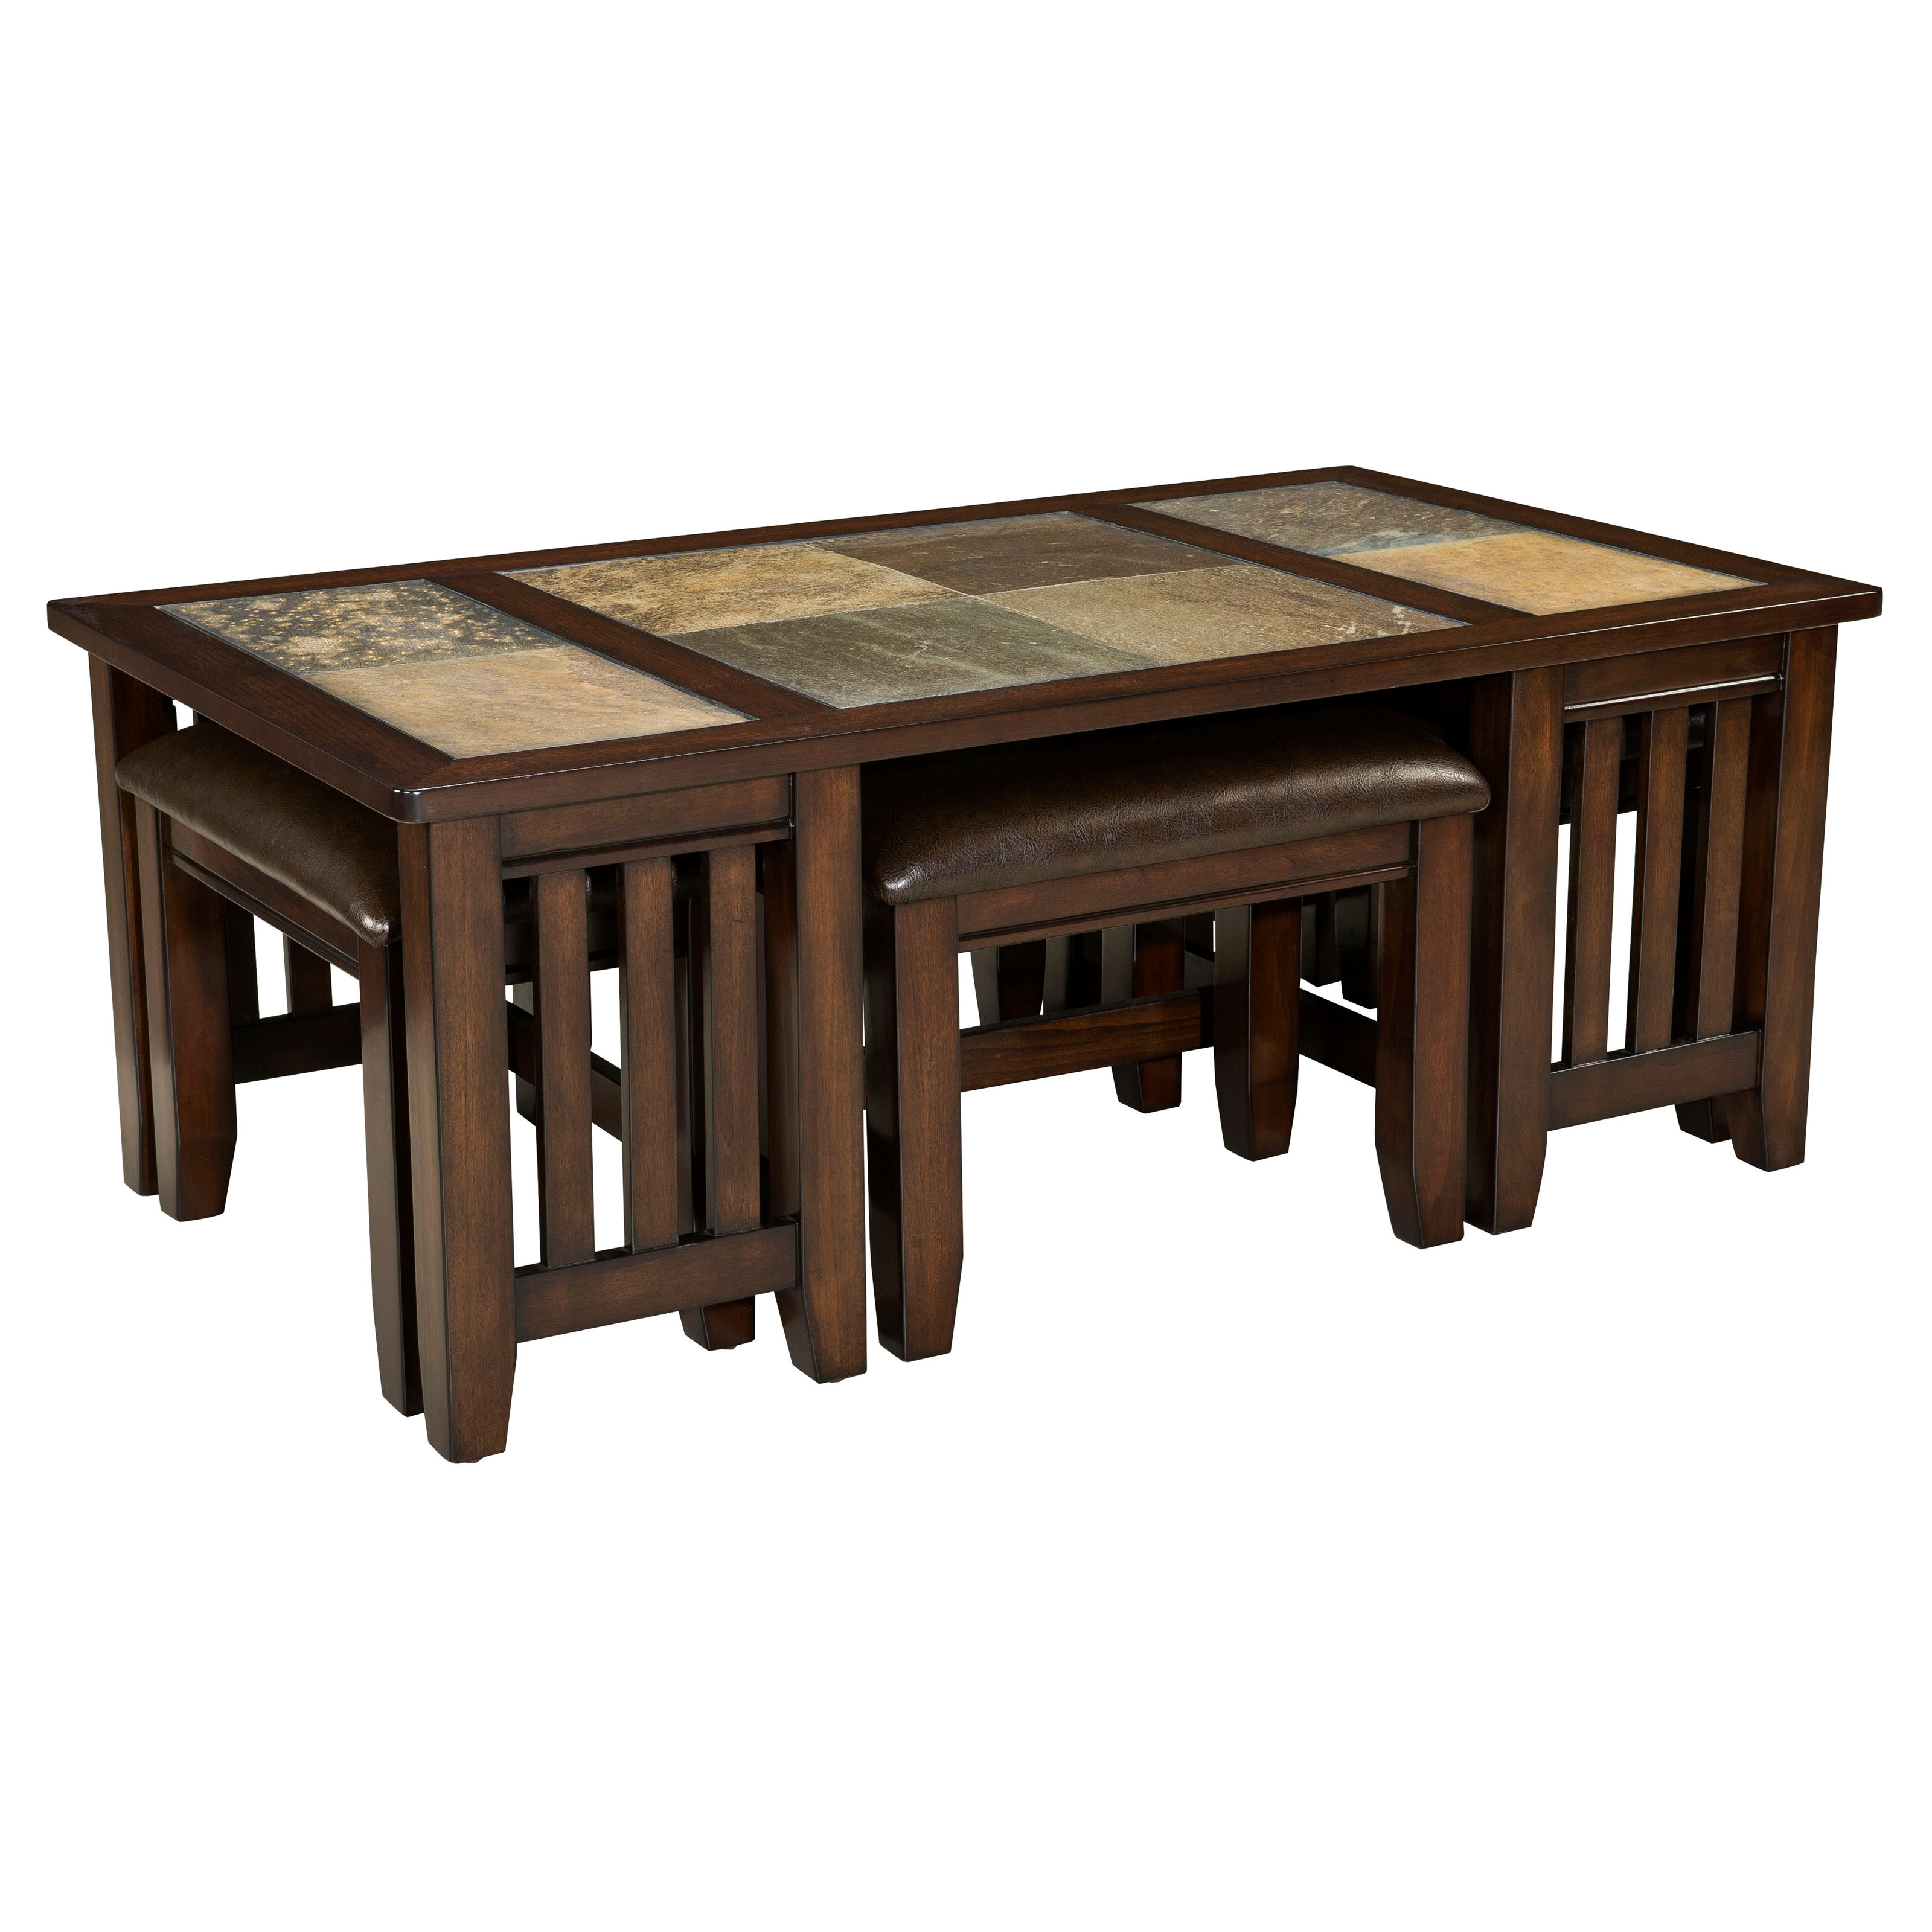 Standard Furniture Napa Valley Rectangle Wood And Stone Top Coffee Table With 4 Stools Coffee